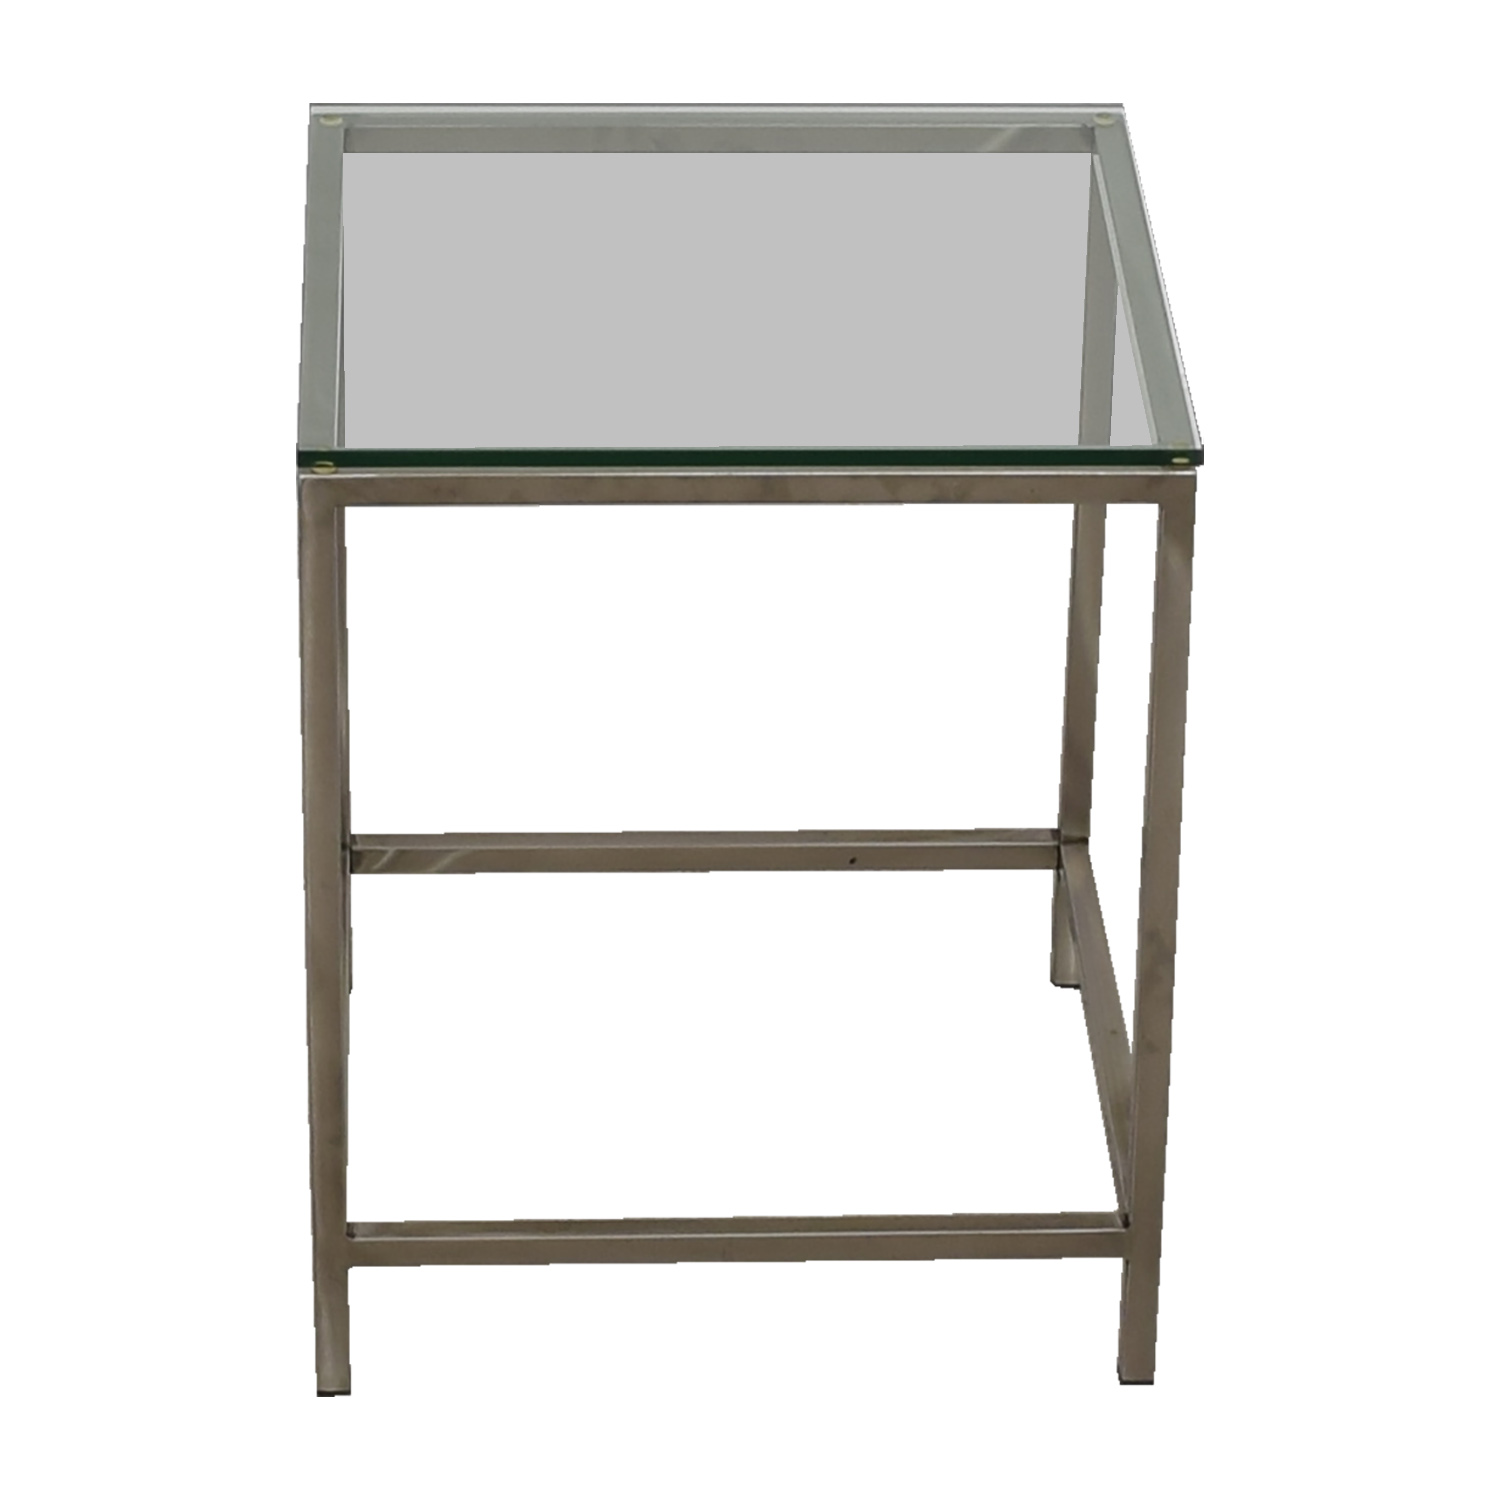 buy Crate & Barrel Square Glass and Chrome Side Table Crate & Barrel End Tables